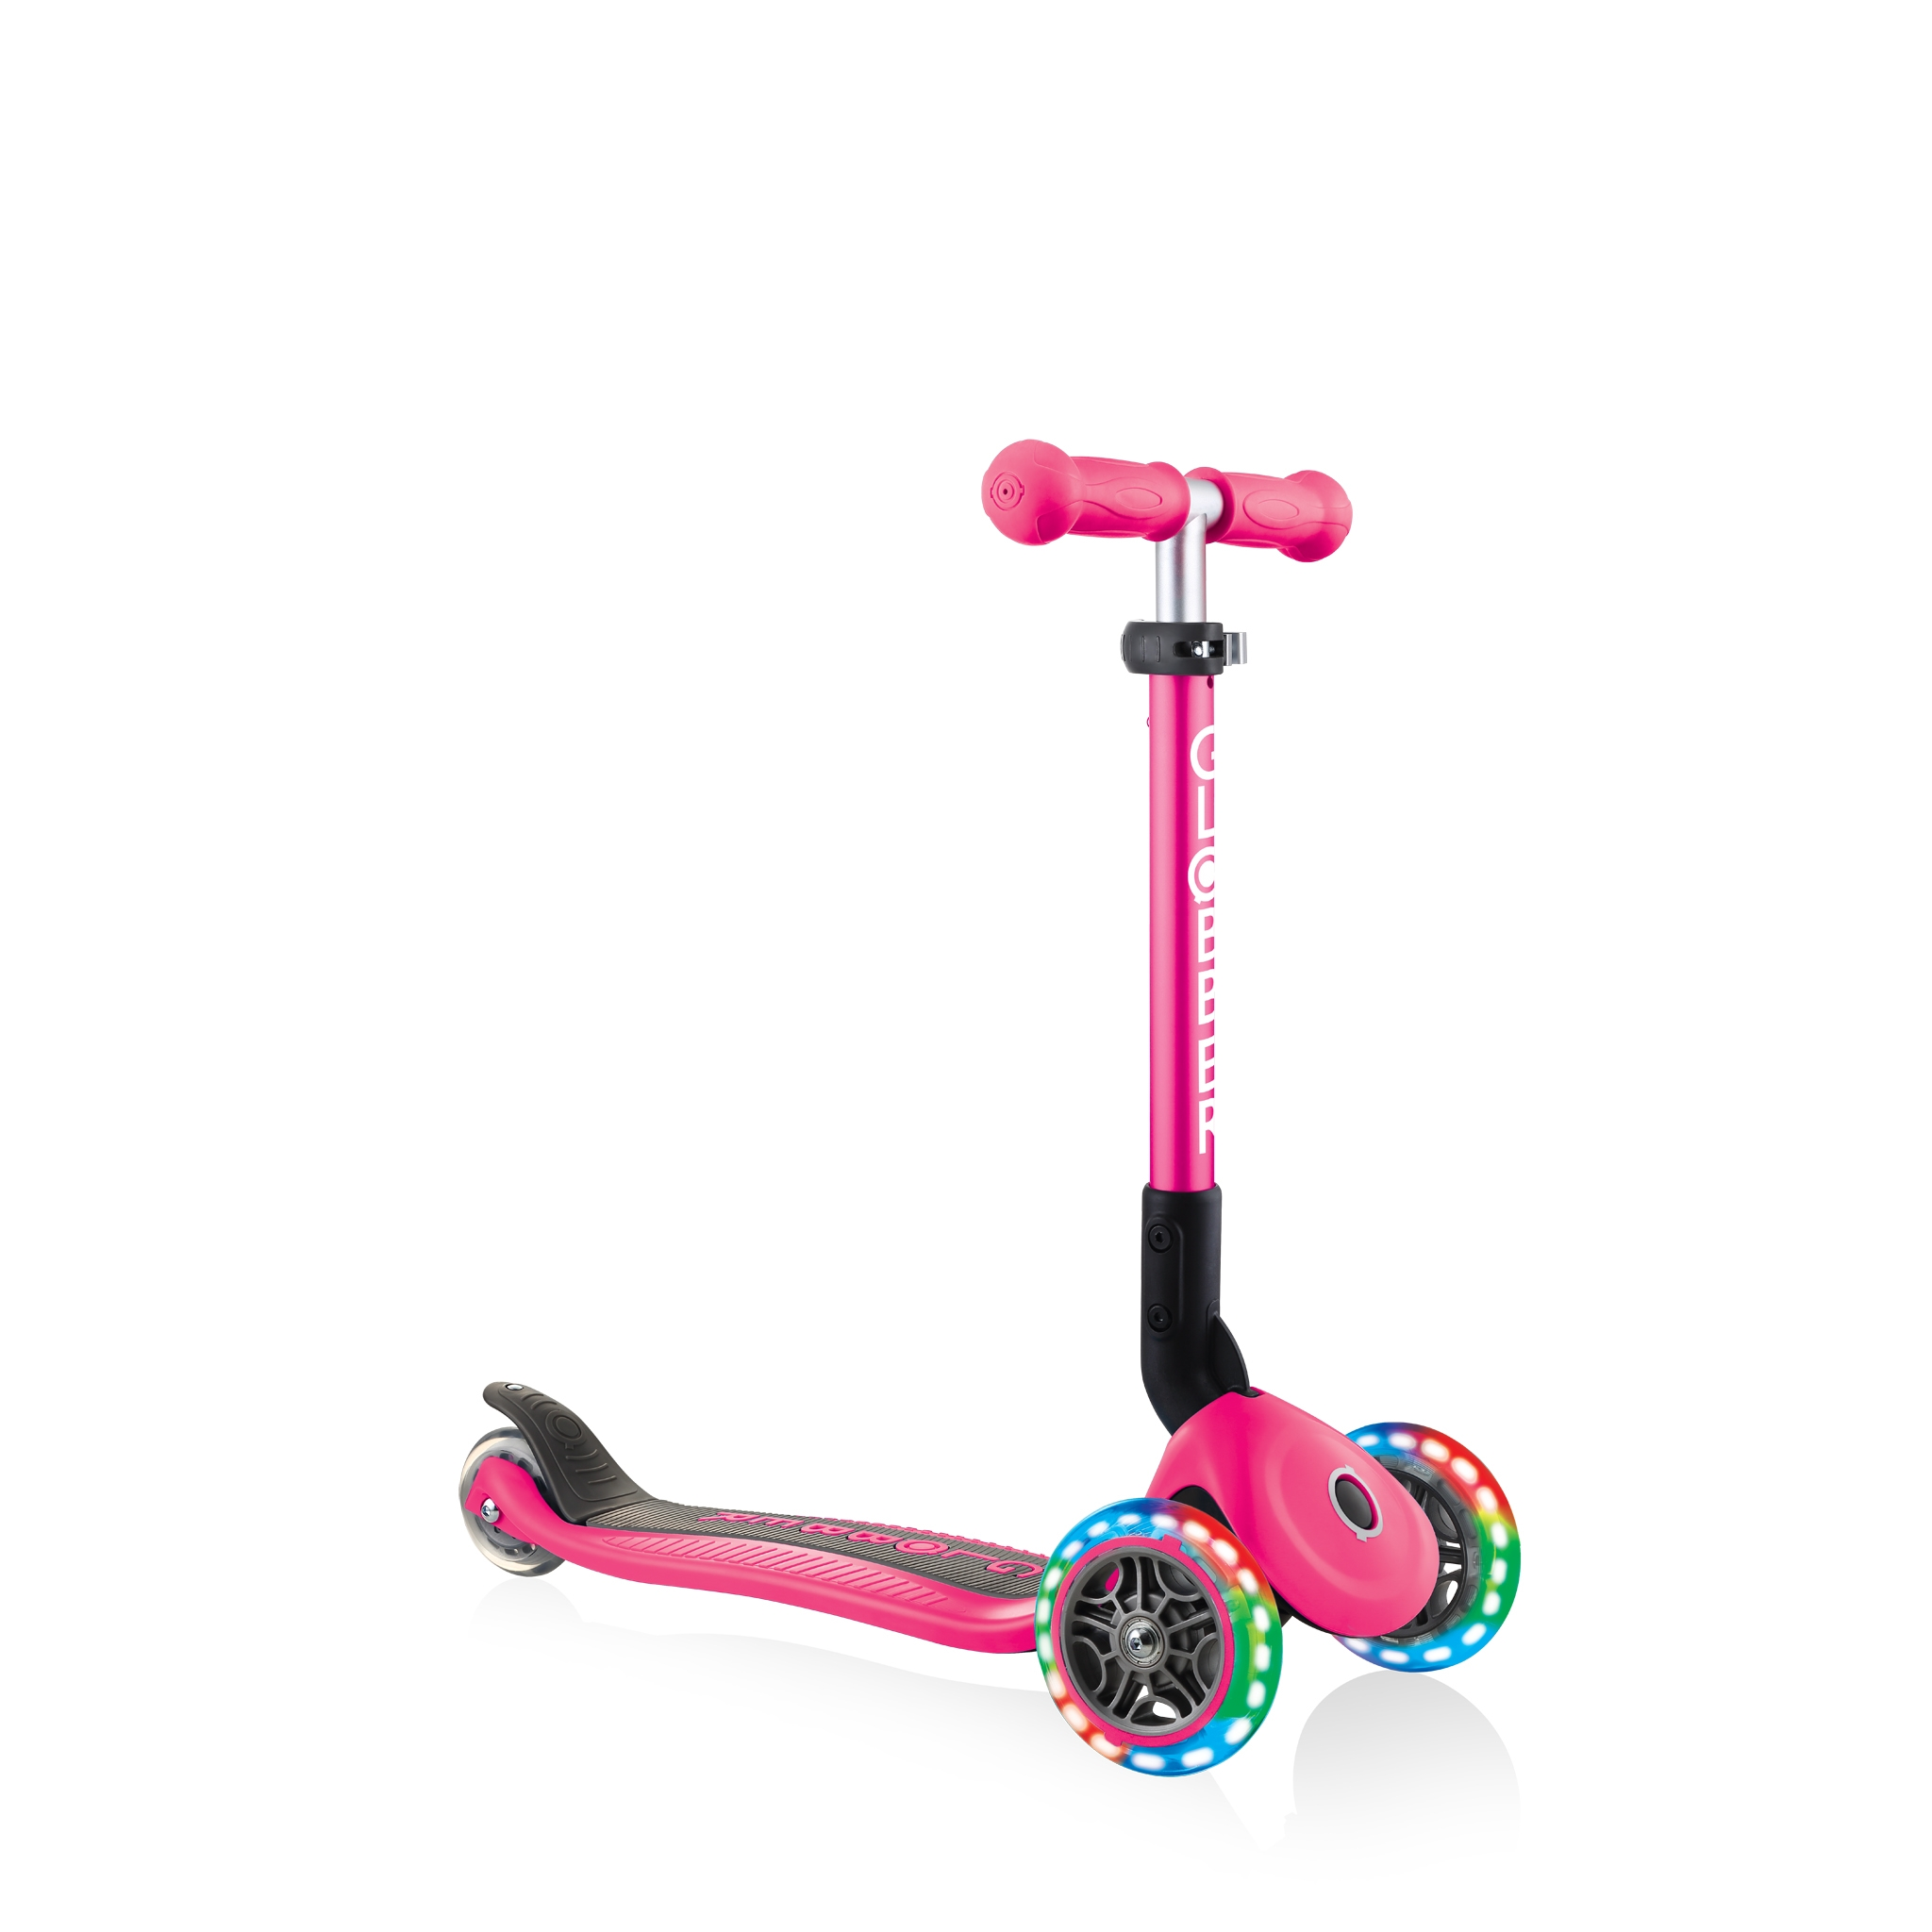 3-wheel-foldable-light-up-scooter-for-toddlers-aged-2-years-old-Globber-JUNIOR-FOLDABLE-LIGHTS 0